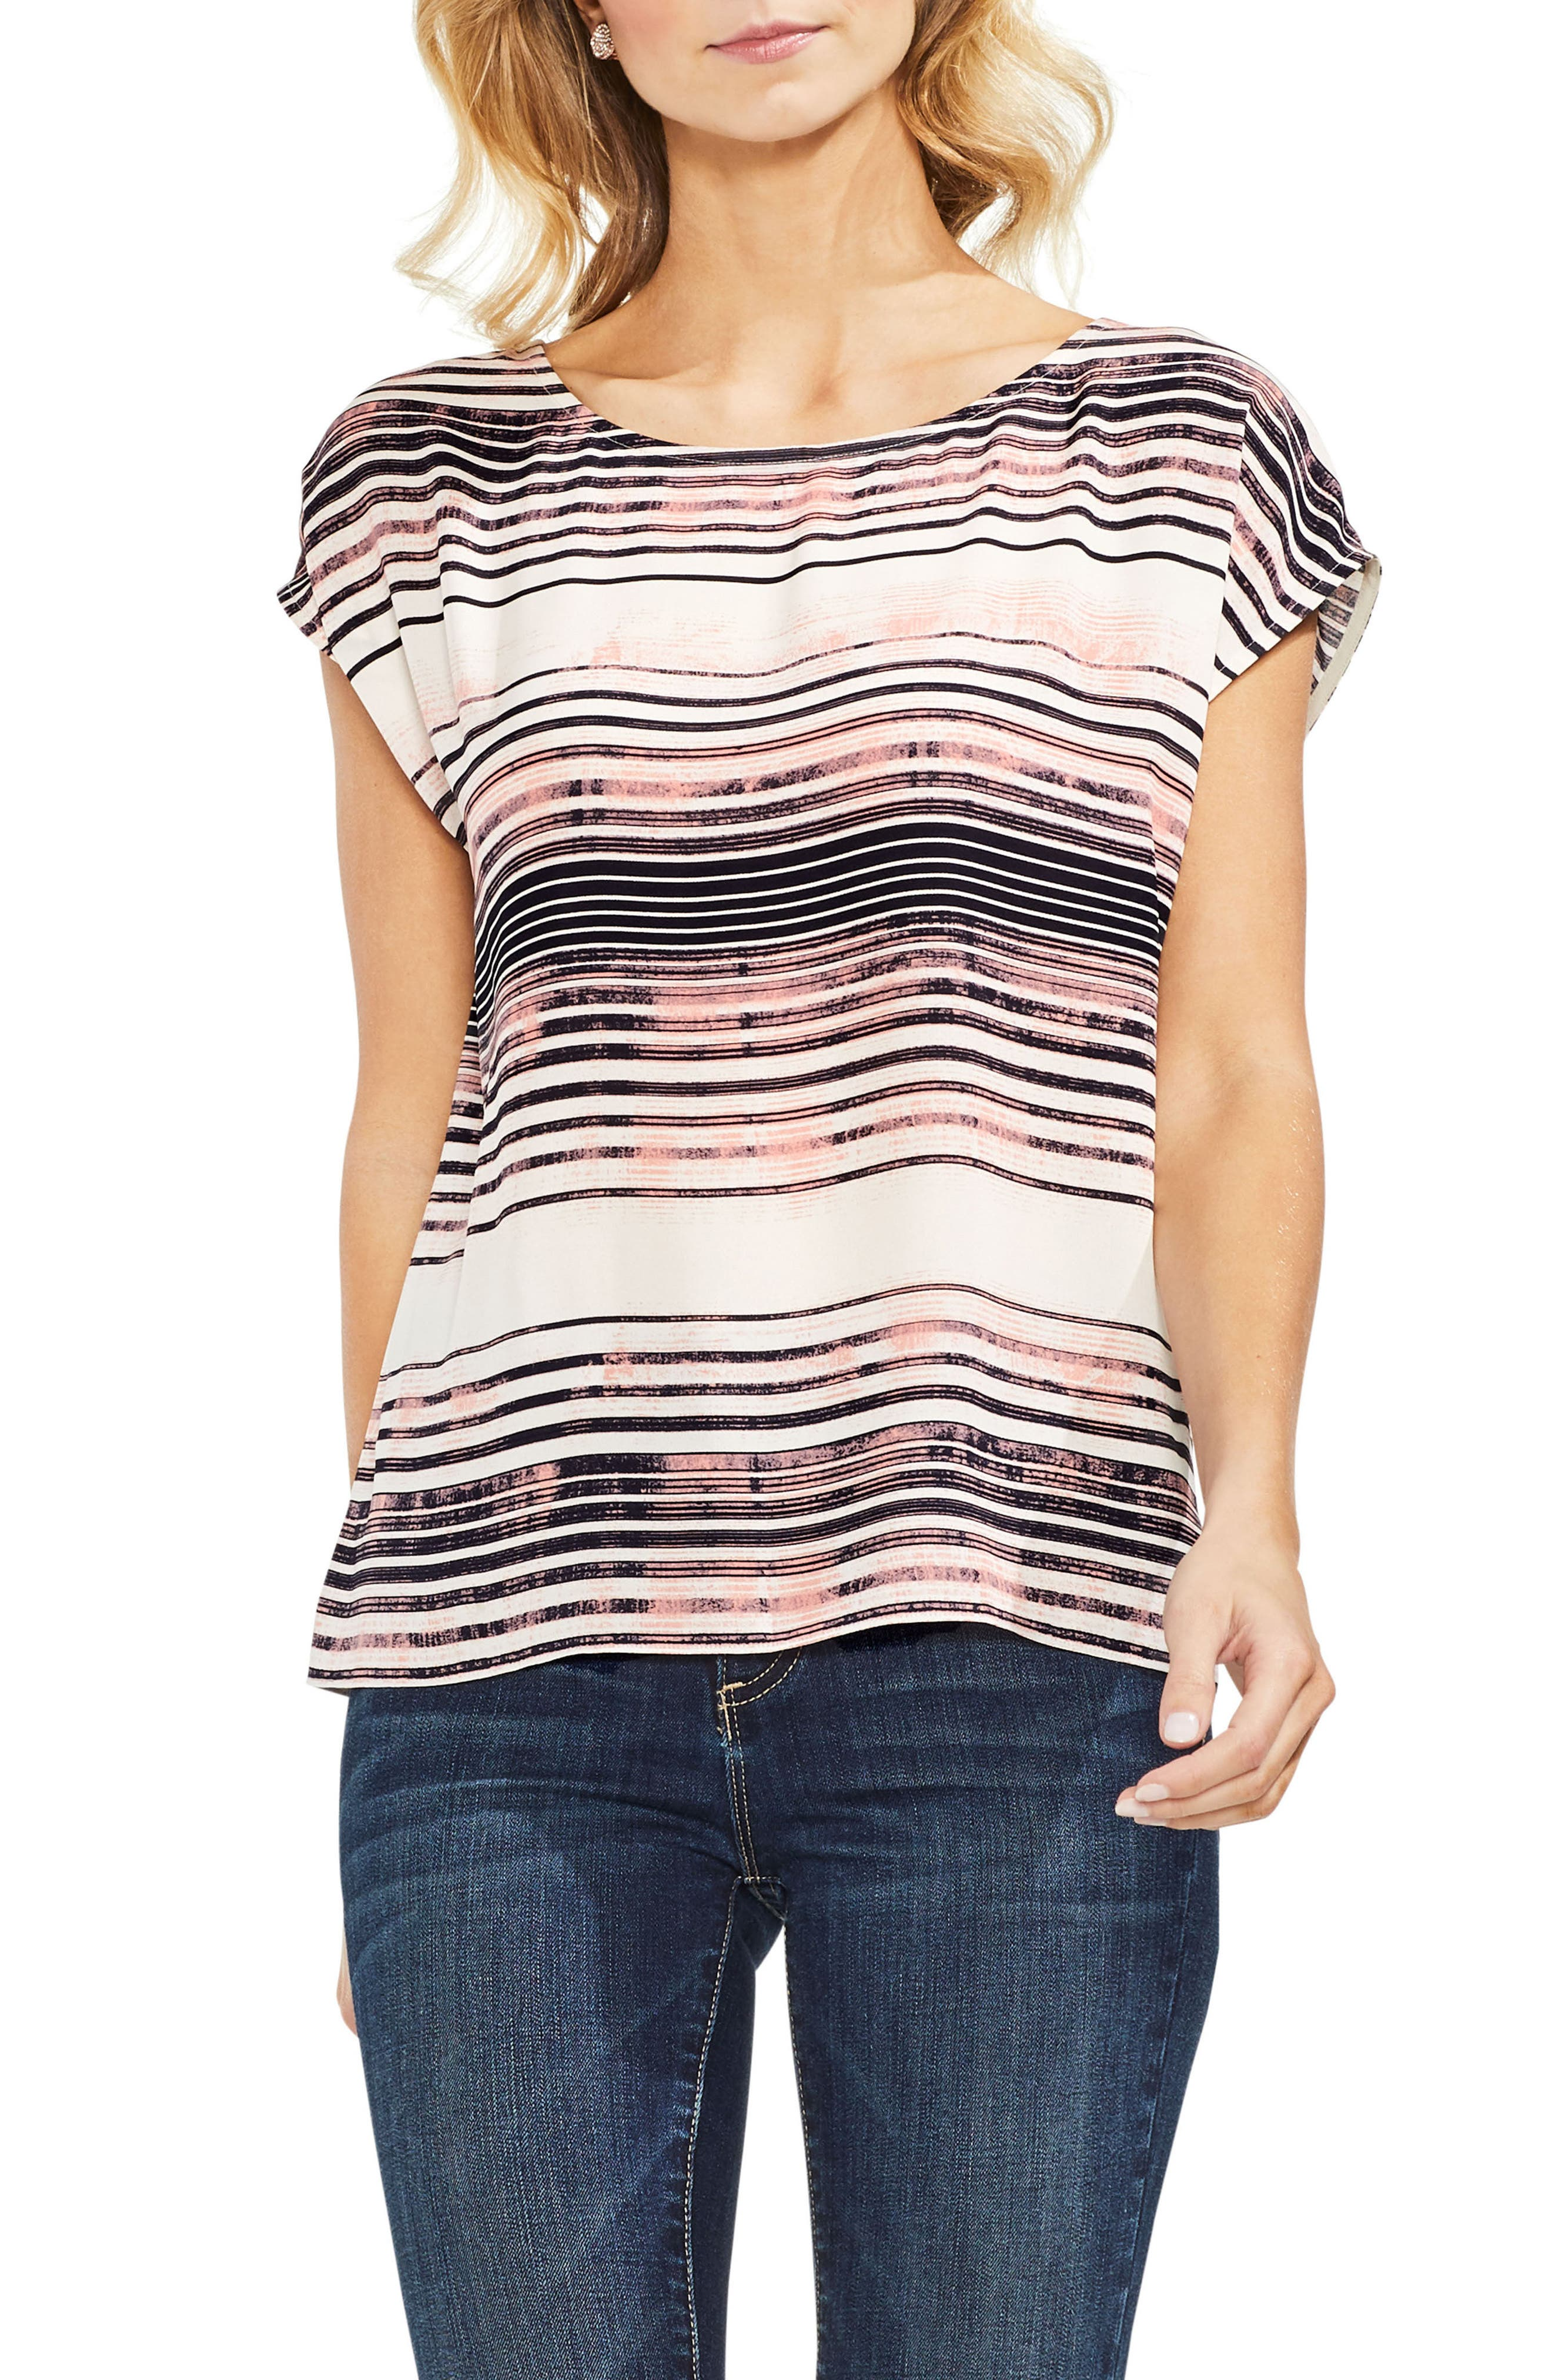 Ancient Muses Stripe Top,                             Main thumbnail 1, color,                             900